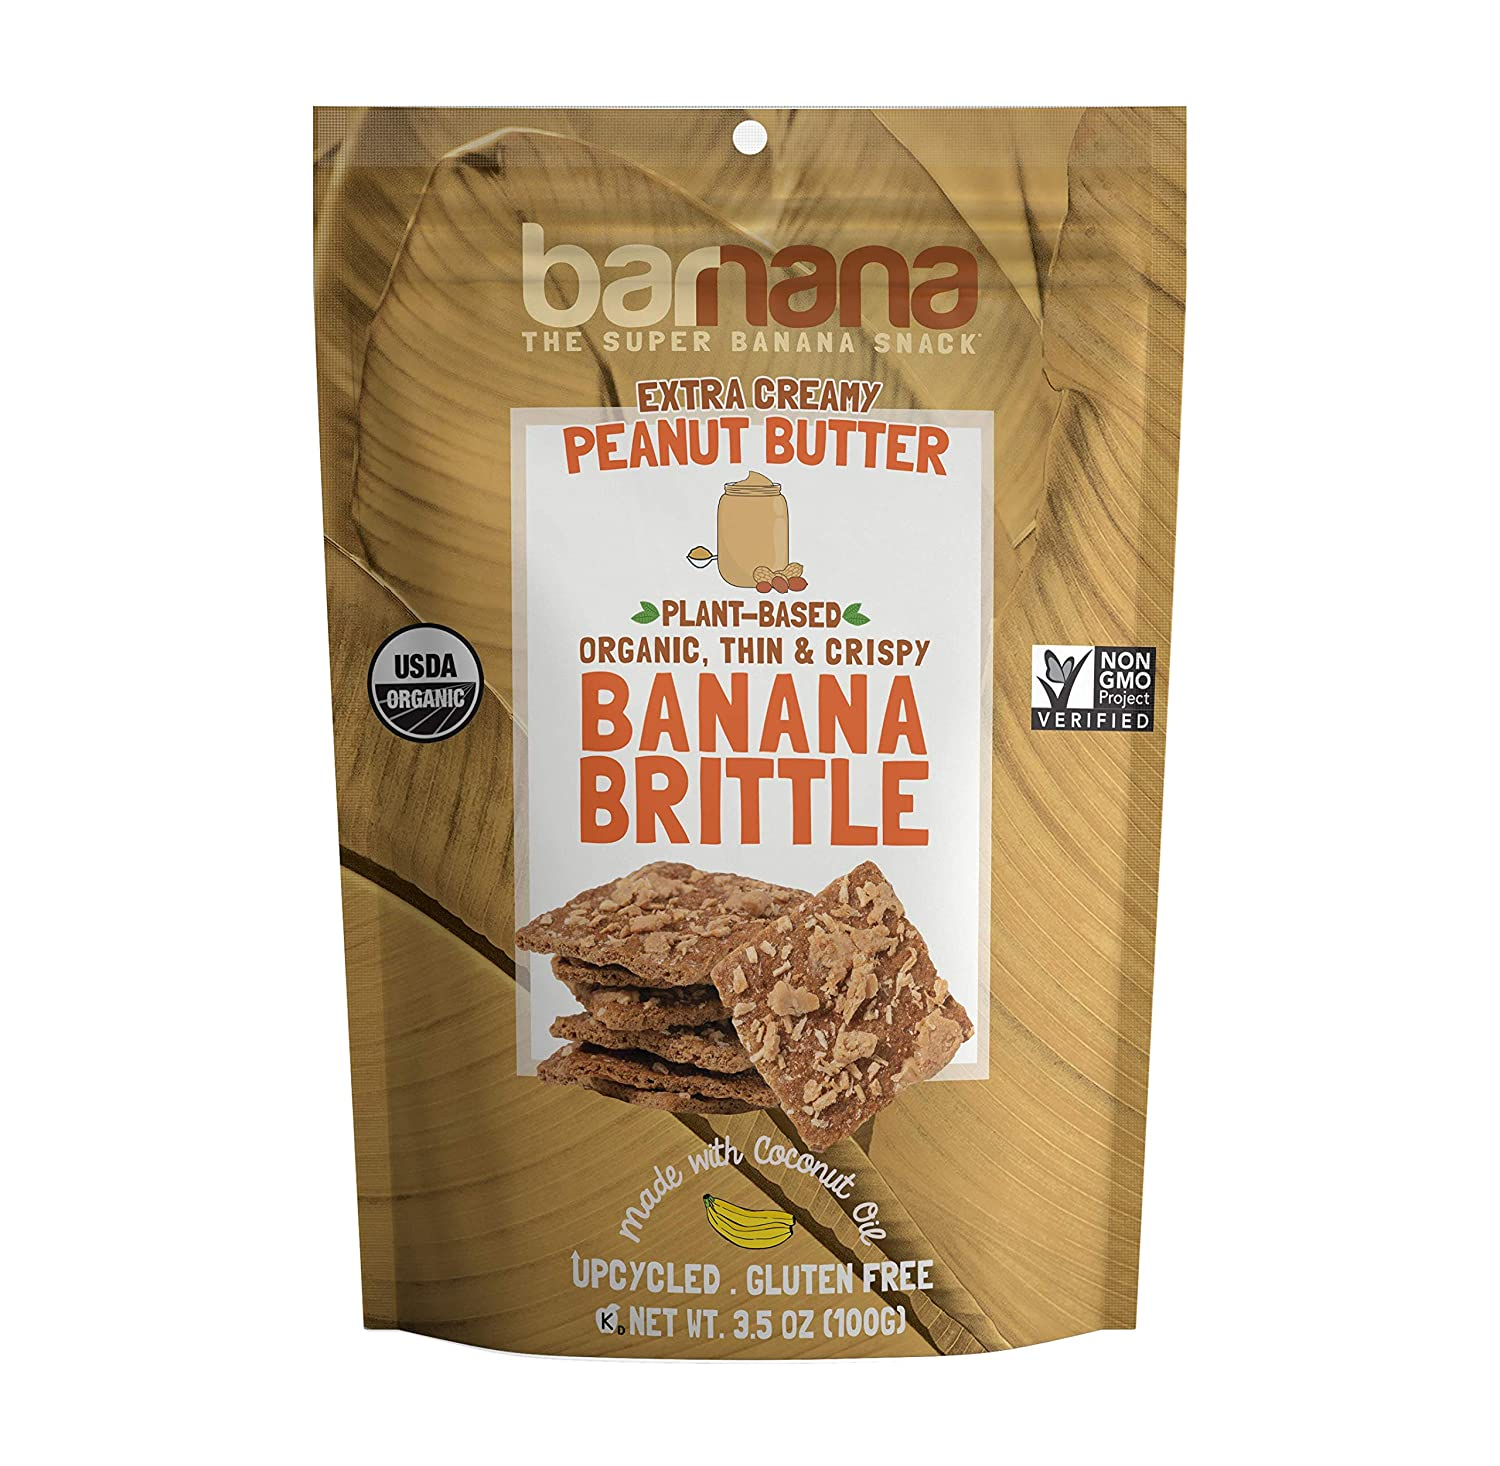 Barnana Organic Crunchy Banana Cookie Brittle - Peanut Butter, 3.5 Ounce - Healthy Vegan Dessert Snack - Made with Sustainable, Eco Friendly Upcycled Bananas